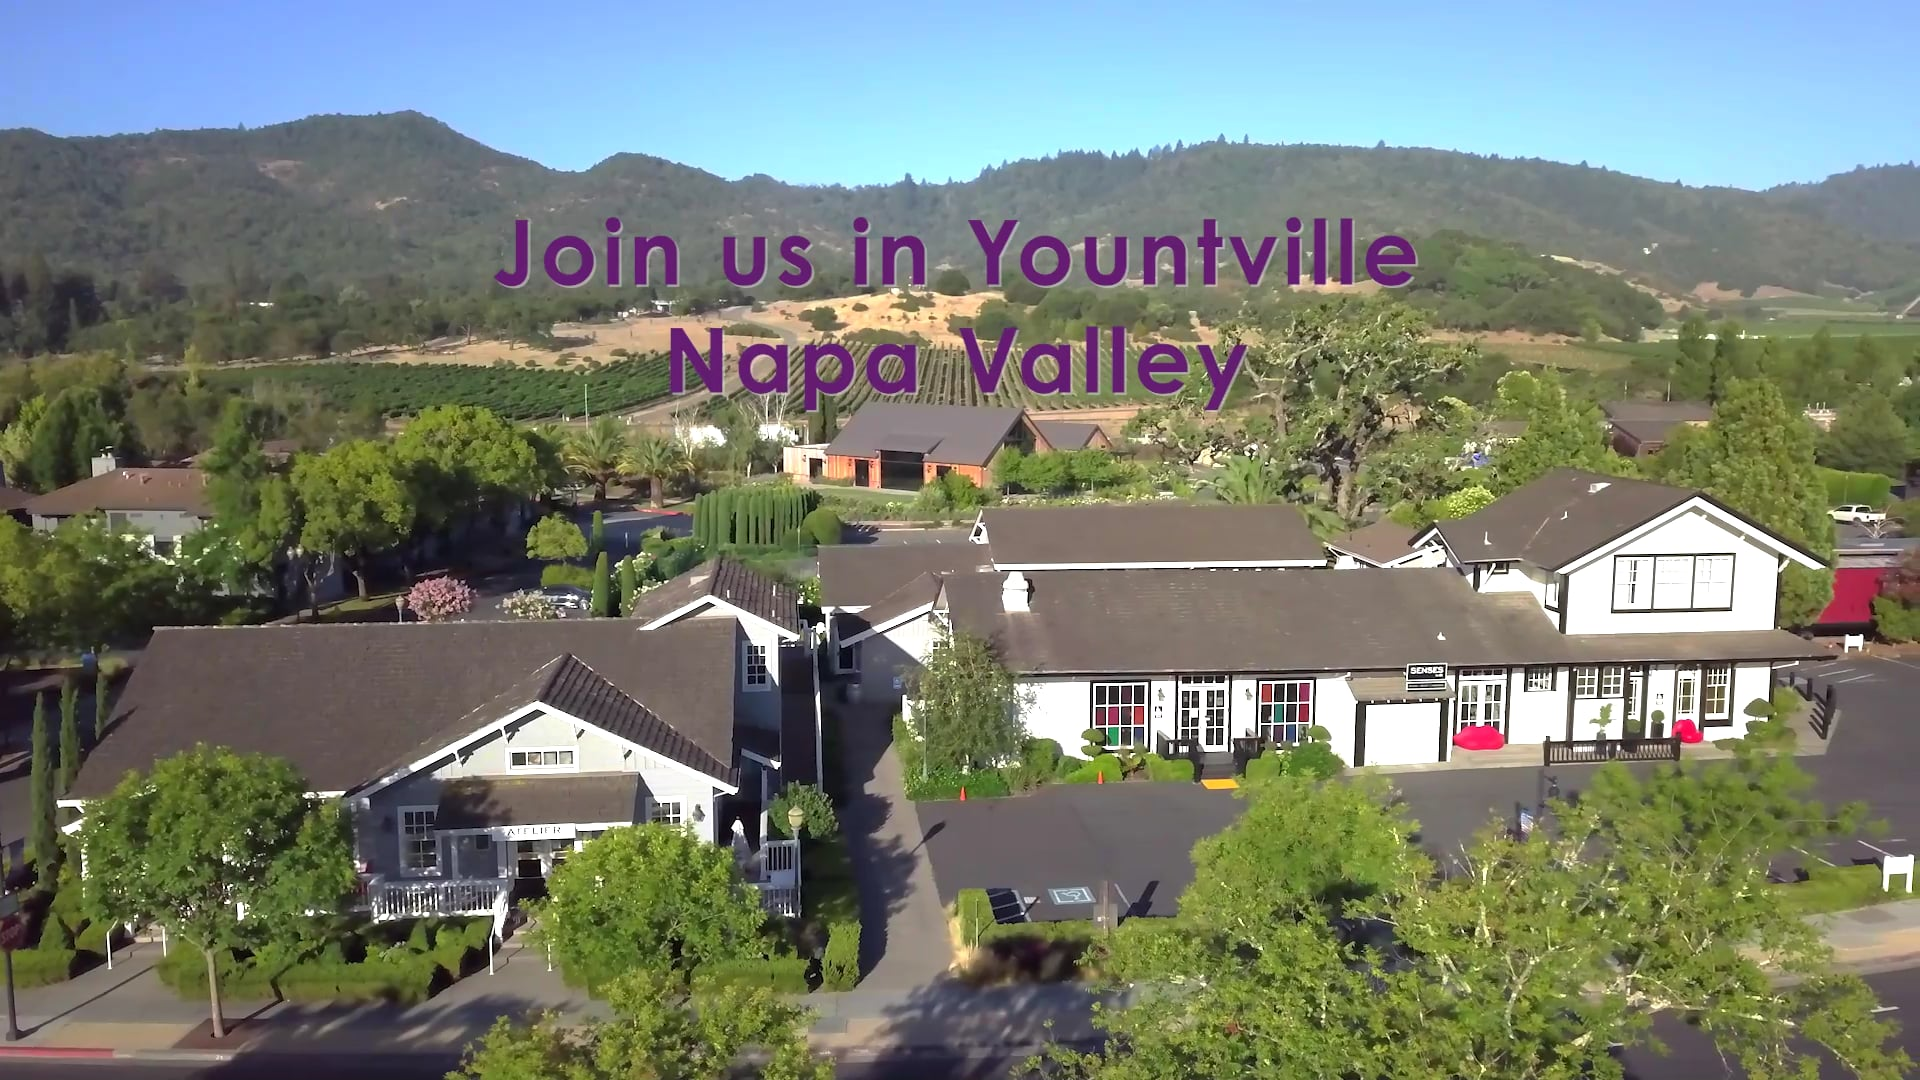 Yountville (Napa Valley) California--Make a Reservation